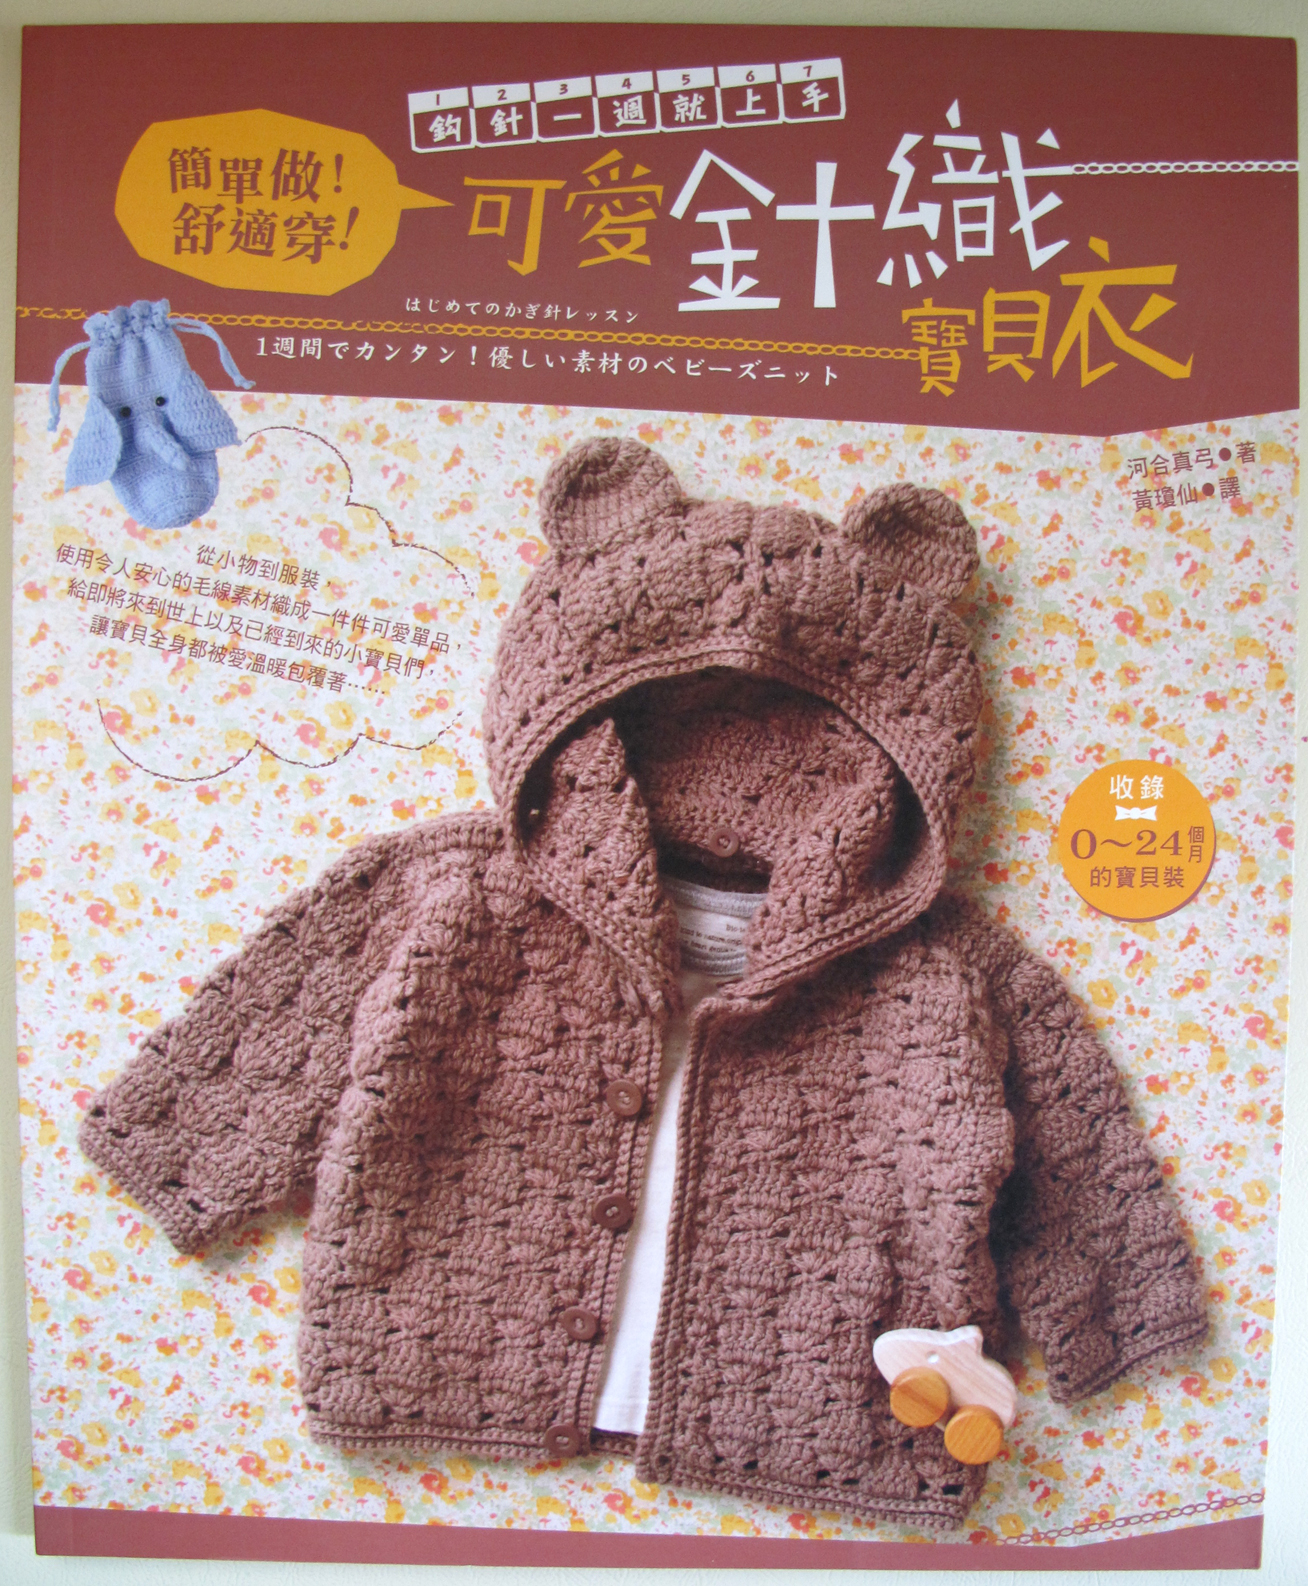 ... .com: Kawaii One Week Baby Crochet Book - Japanese Crochet Book